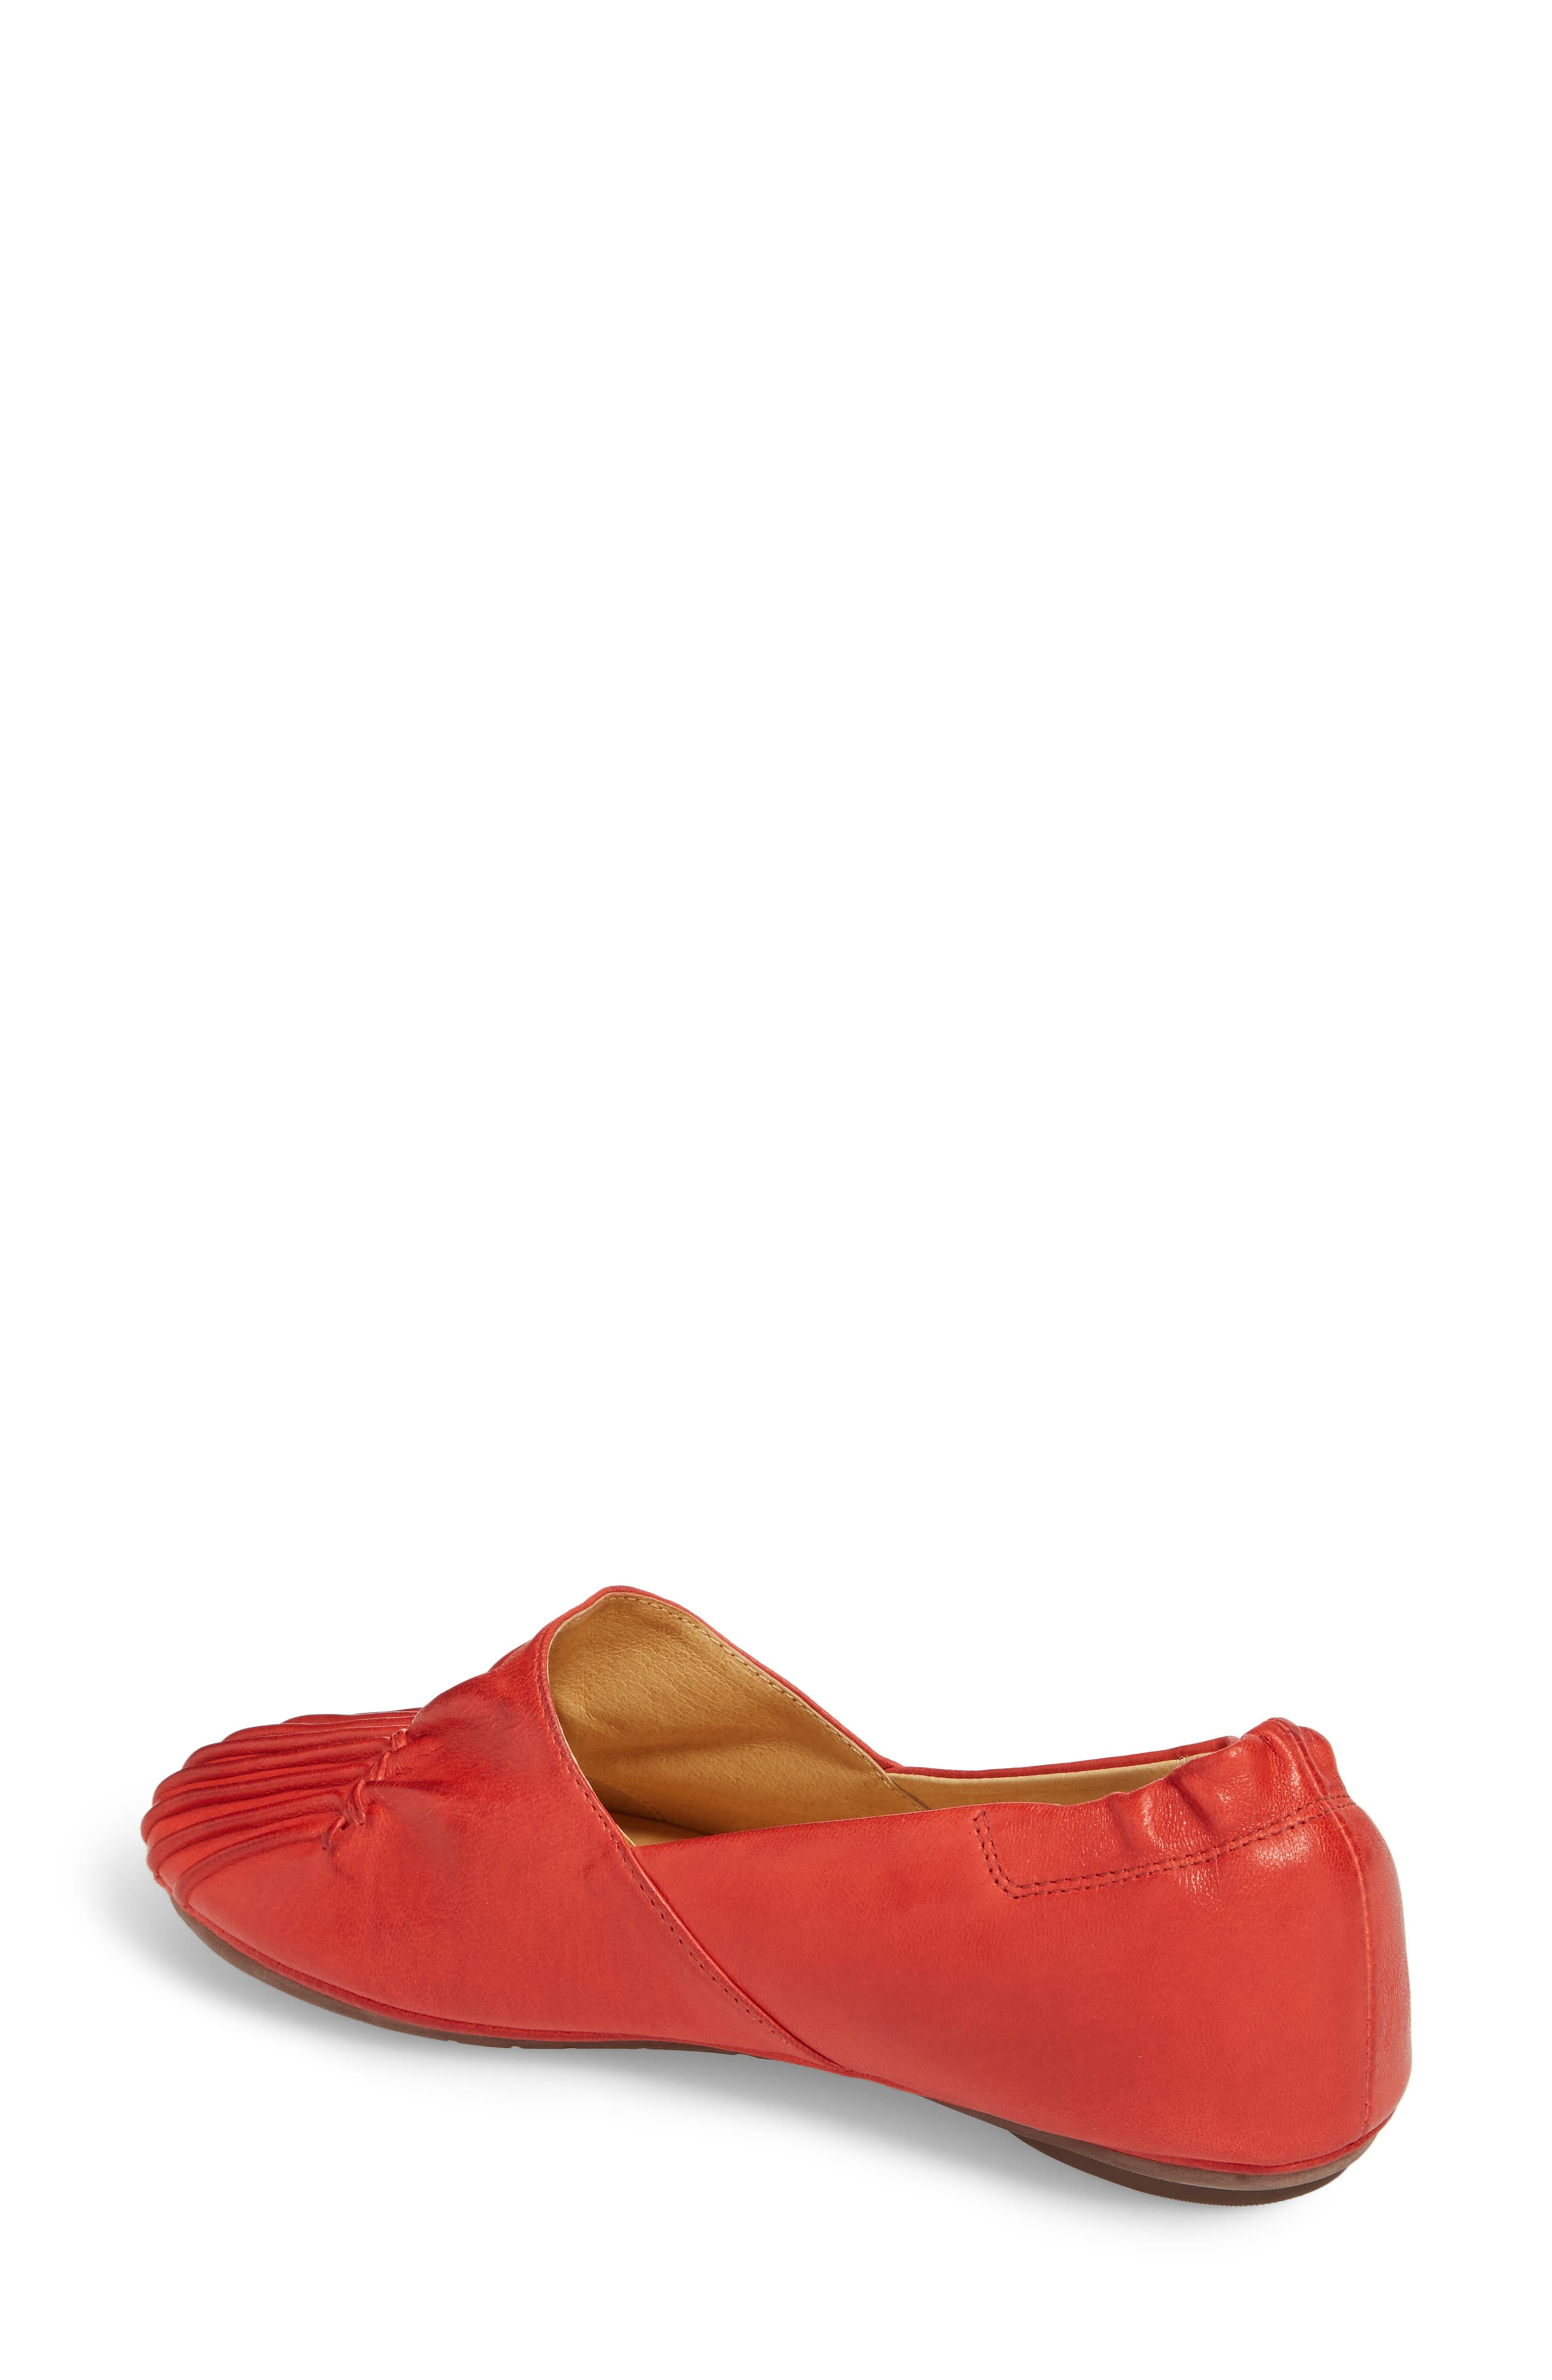 CHOCOLAT BLU,                             Cam II Pleated Flat,                             Alternate thumbnail 2, color,                             RED LEATHER